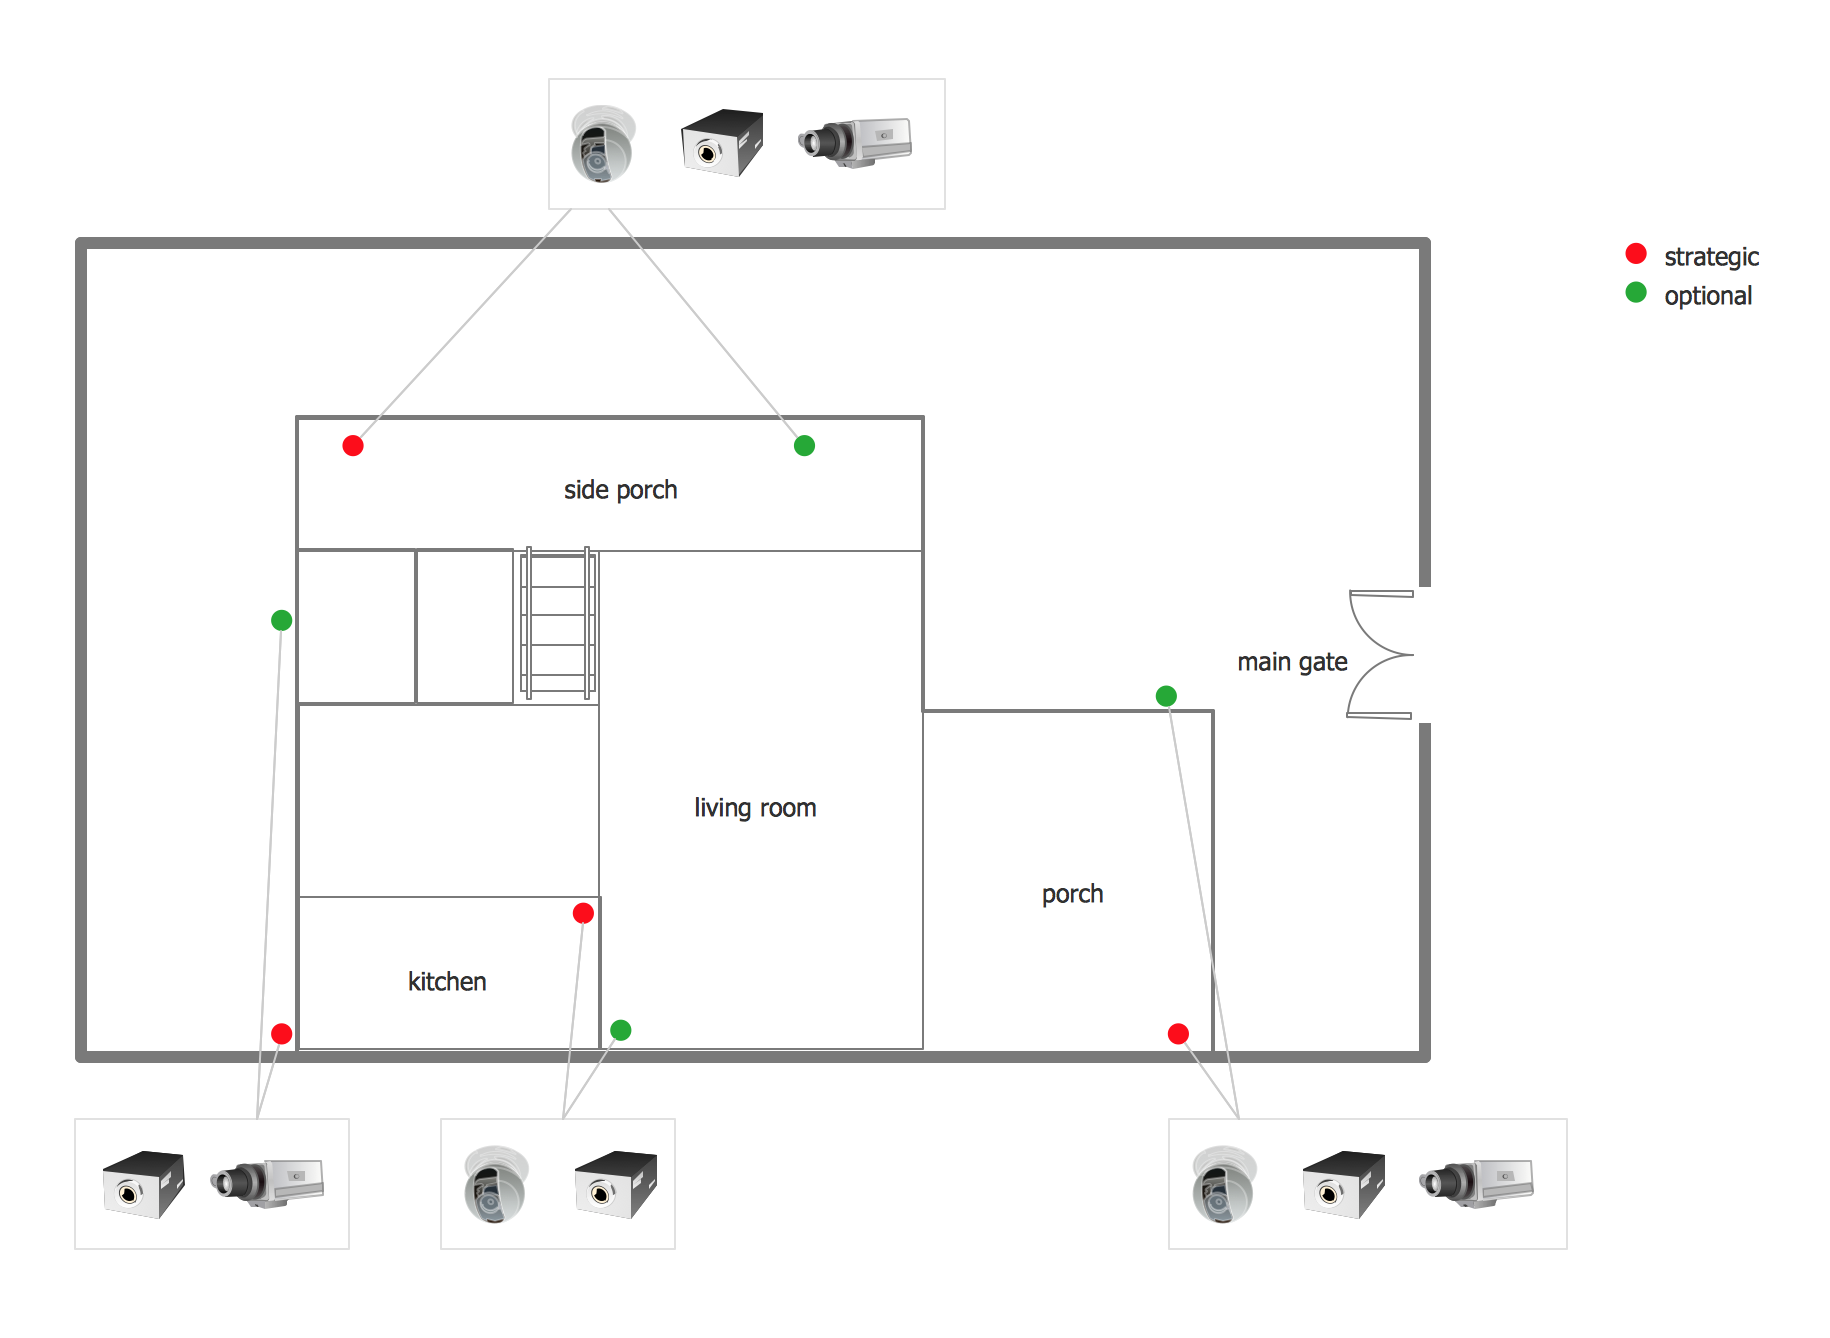 Cctv Network Wiring Diagram Library Wireless Home How To Create